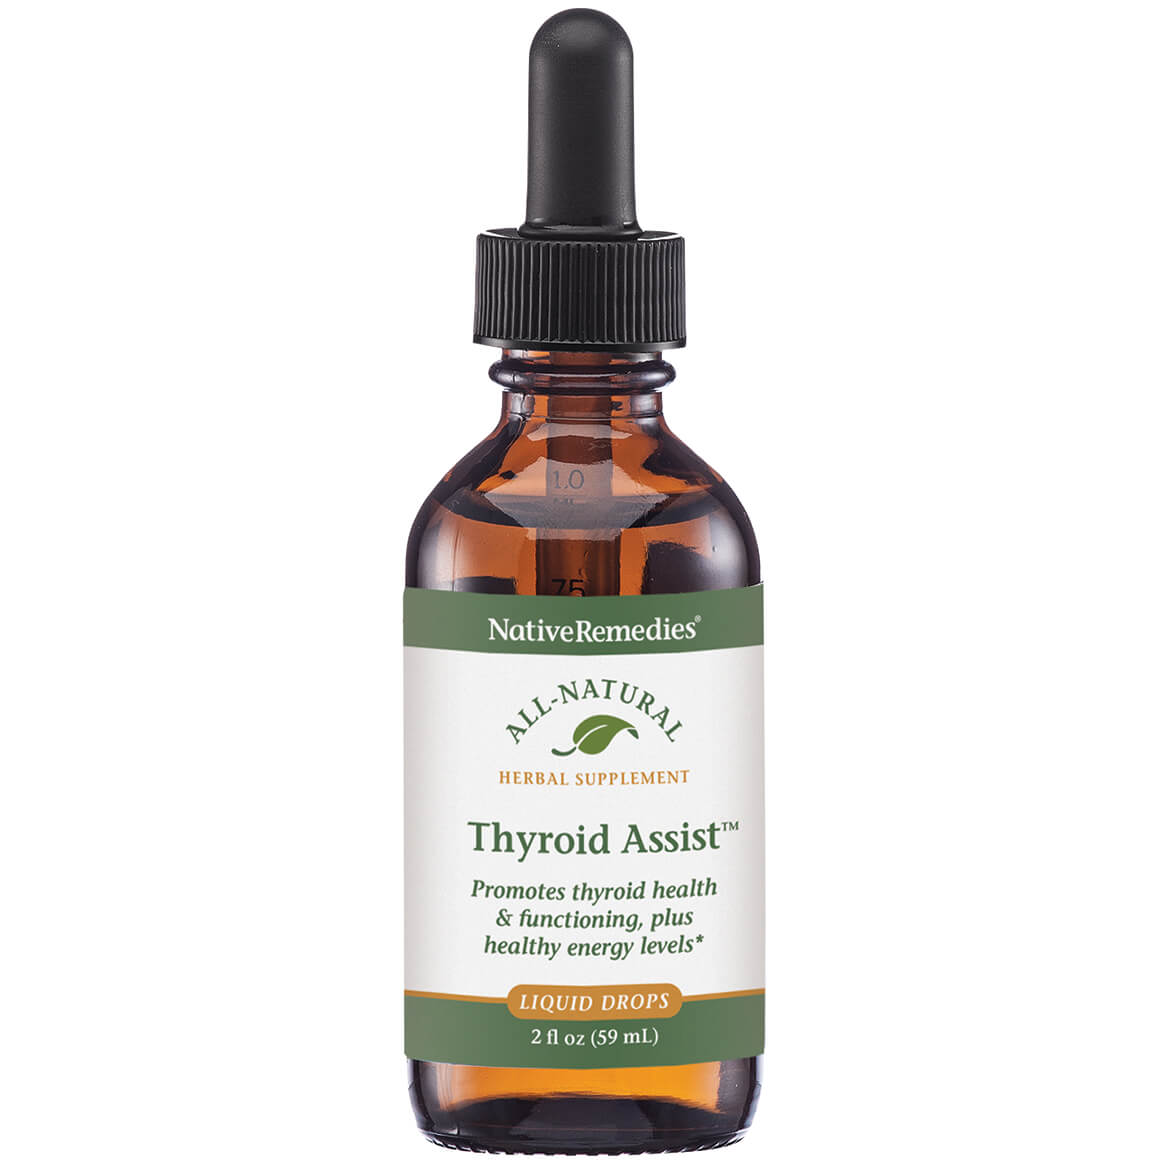 NativeRemedies® Thyroid Assist™